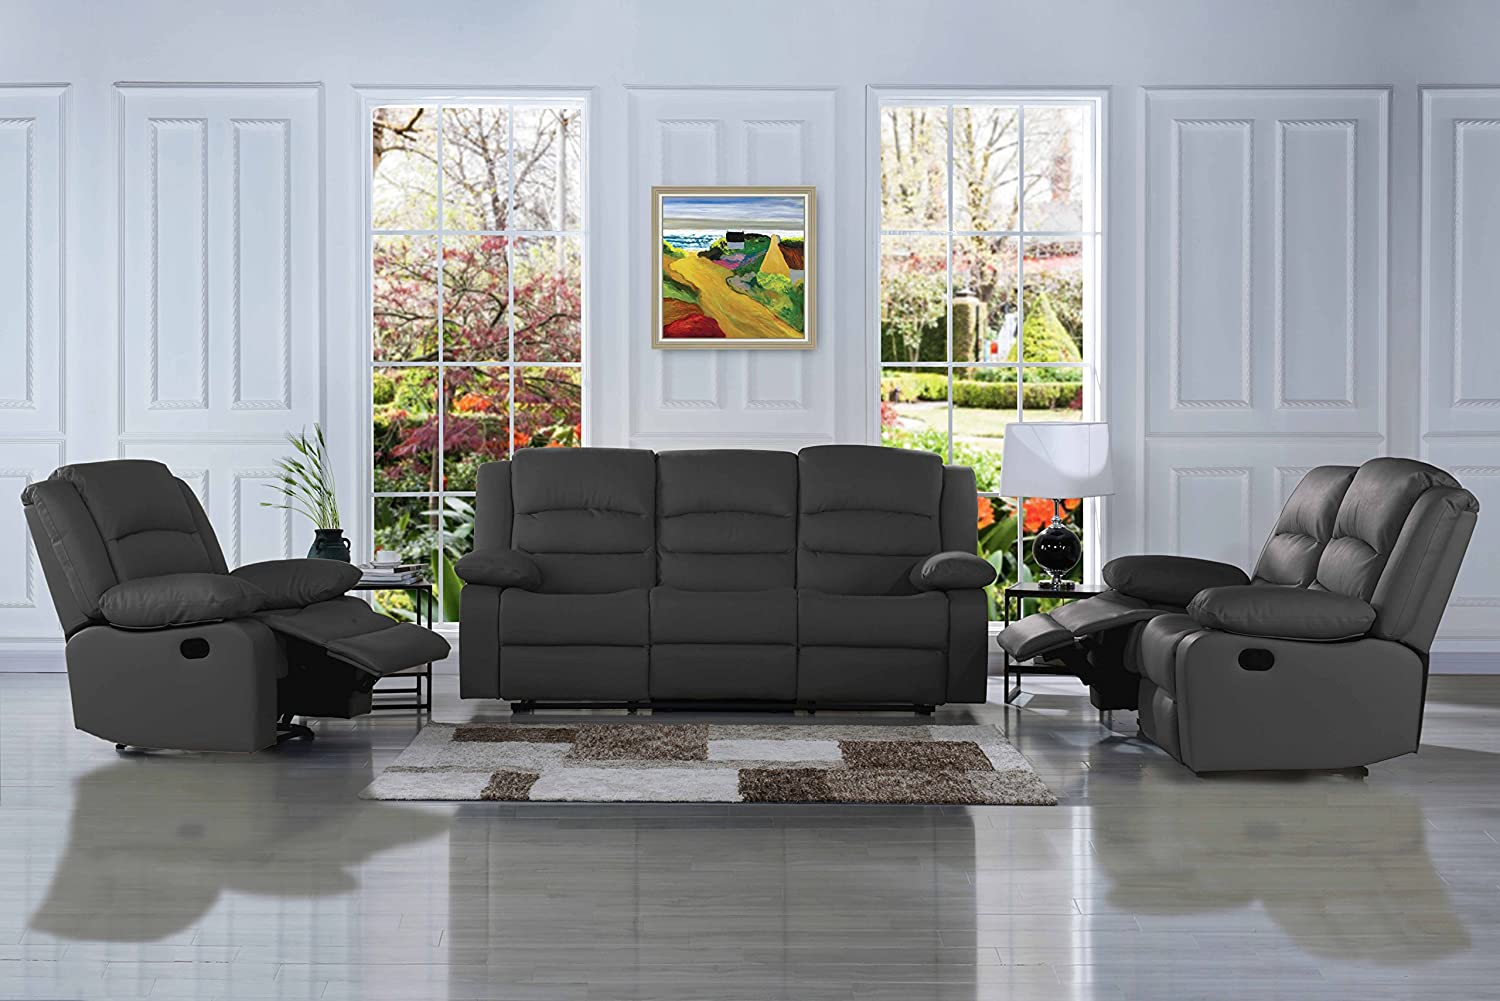 Classic Reclining Sofa Set - Real Grain Leather Match- Double Recliner, Loveseat, Single Chair (Grey)